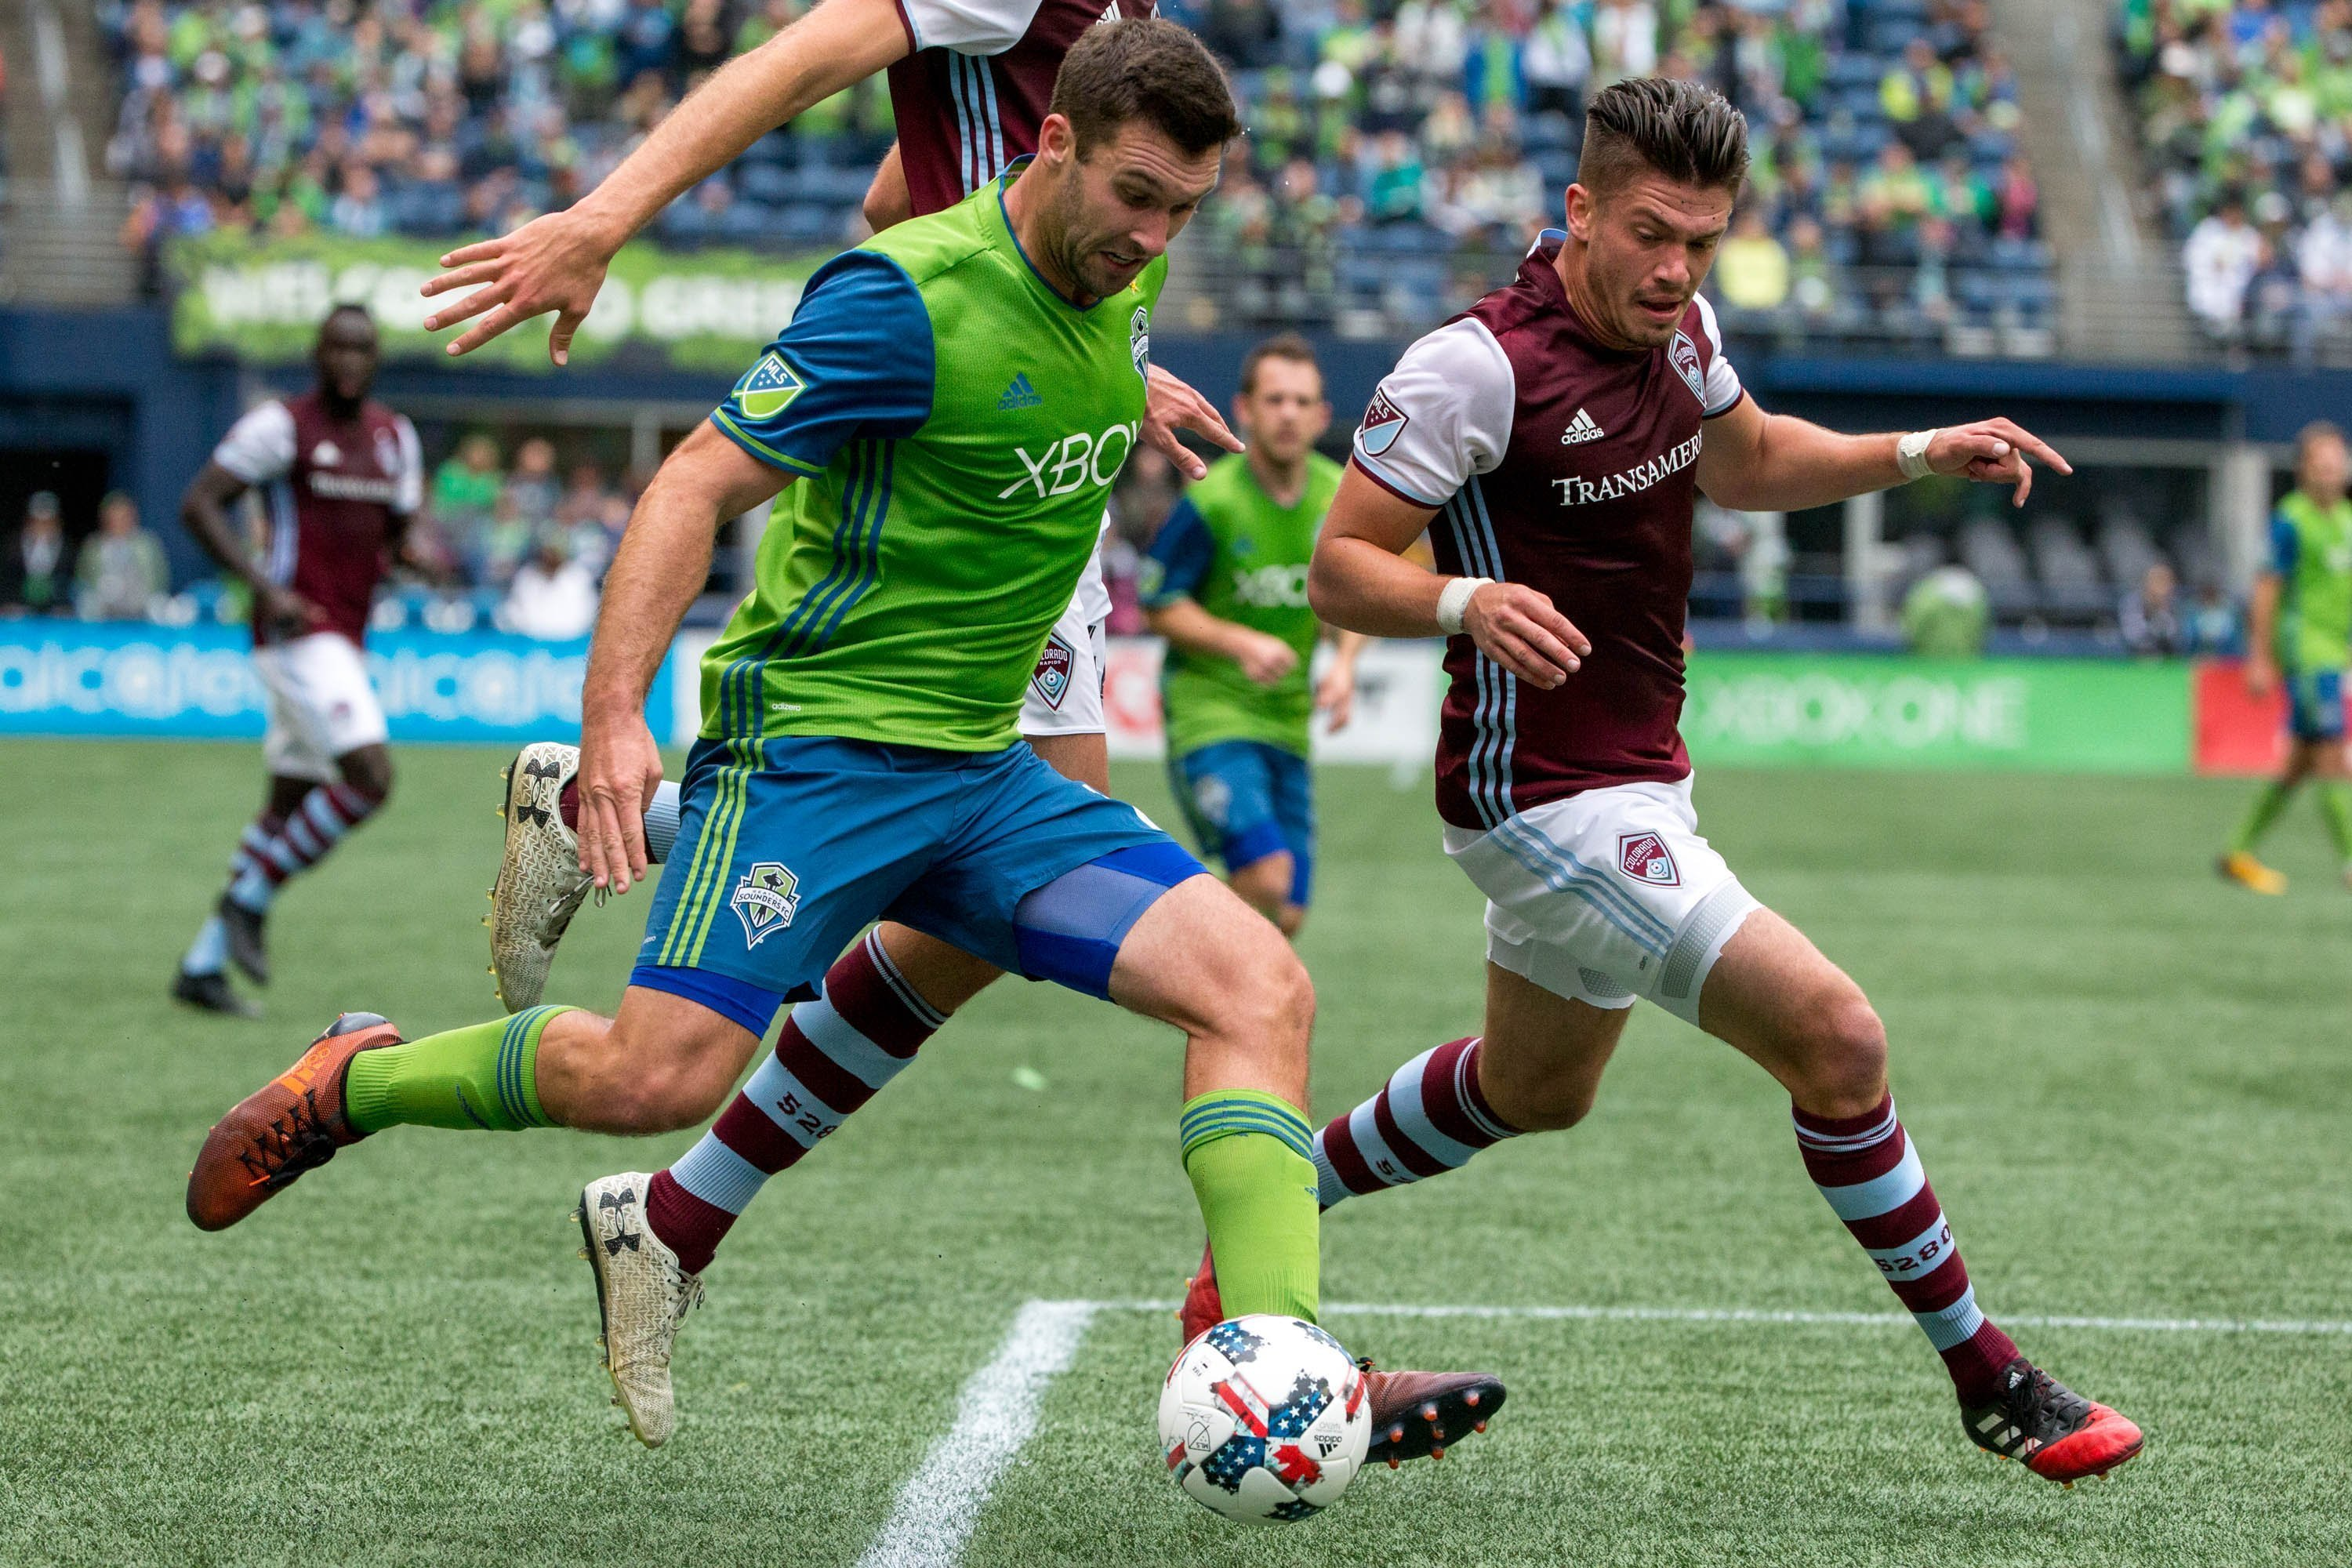 Seattle Sounders defender Will Bruin (17) gets the ball past Colorado Rapids defender Mike da Fonte (2) during the first half of an MLS soccer game in Seattle on Sunday, Oct. 22, 2017. (Courtney Pedroza/The Seattle Times via AP)